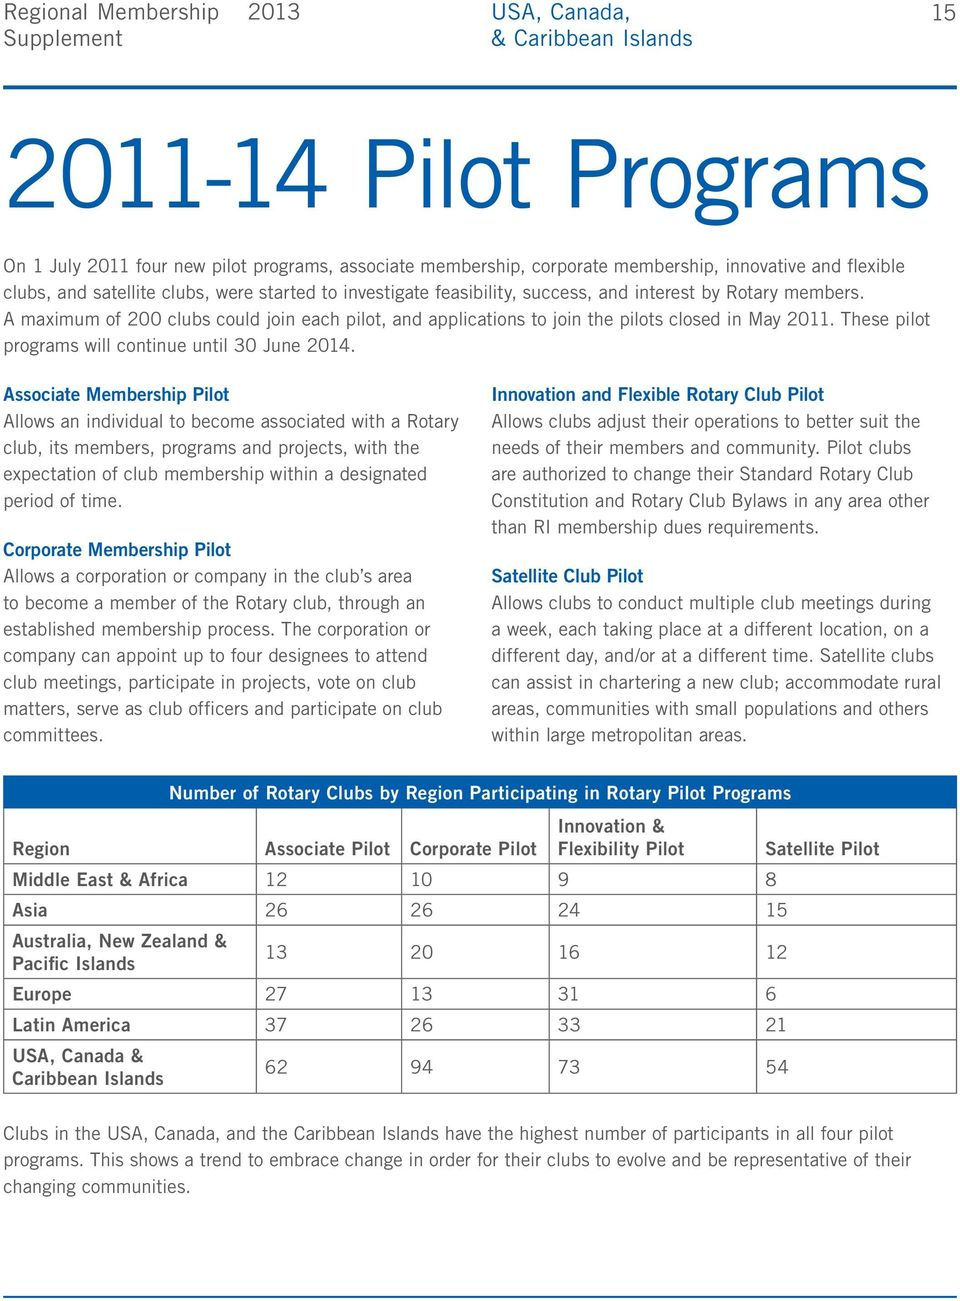 These pilot programs will continue until 30 June 2014.